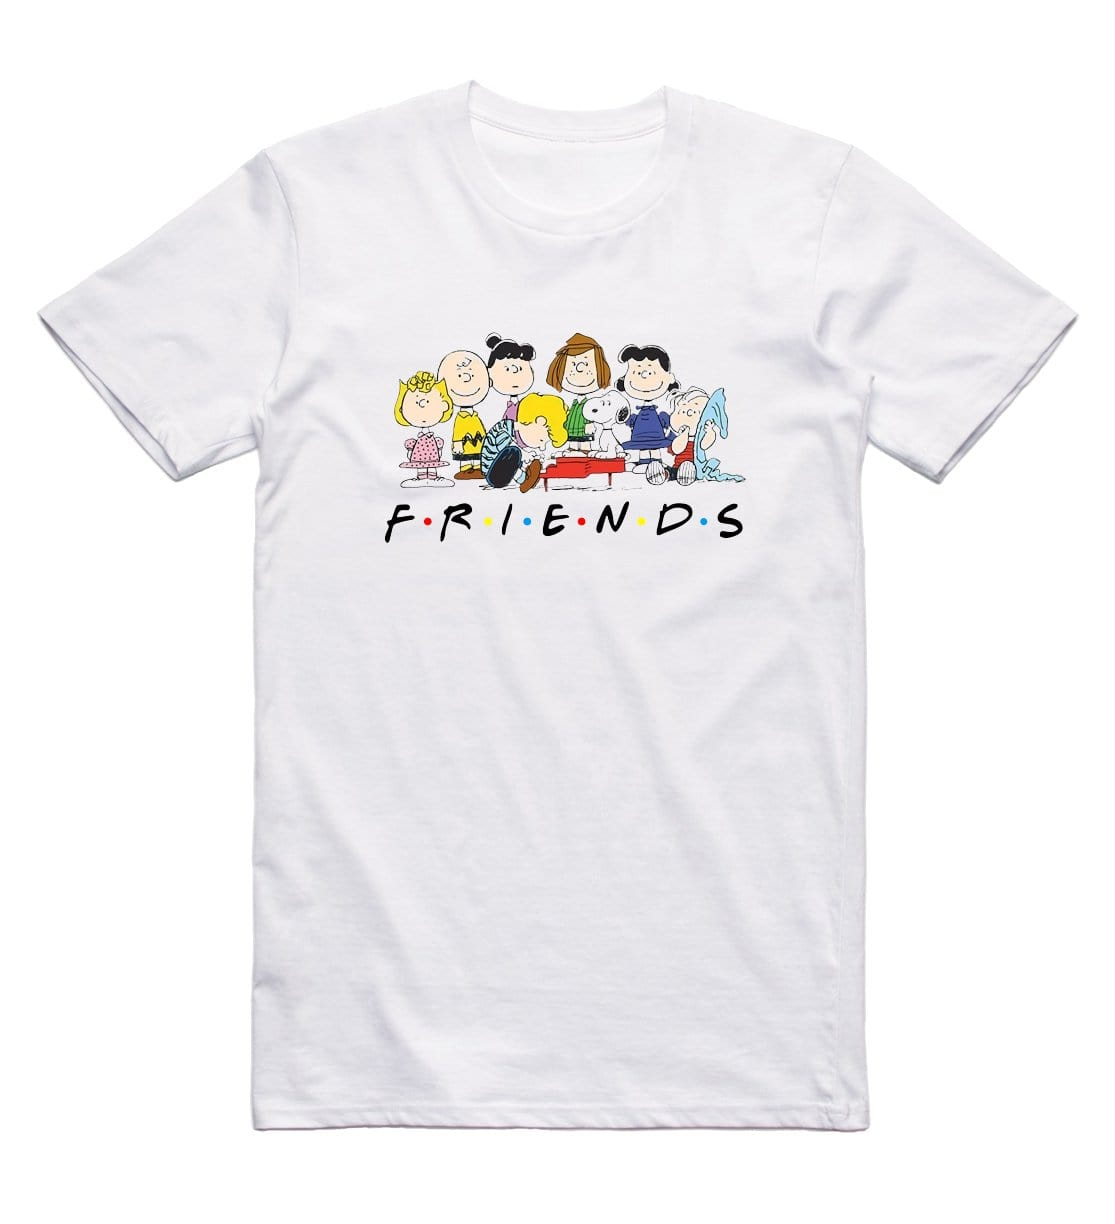 Peanuts Friends T-Shirt